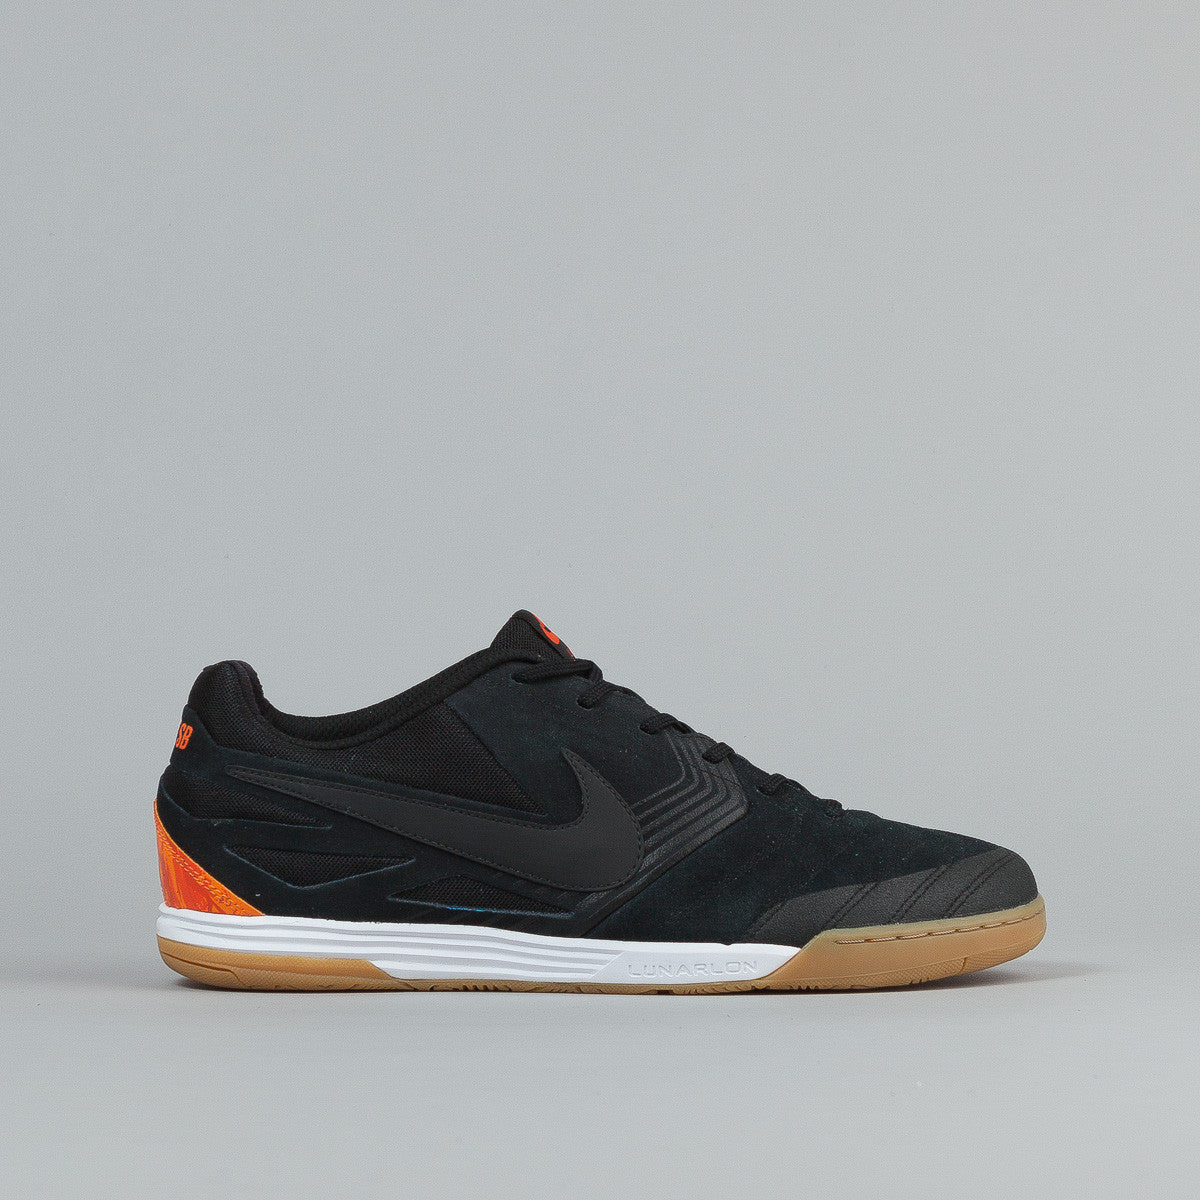 Nike SB Lunar Gato WC Black / Safety Orange